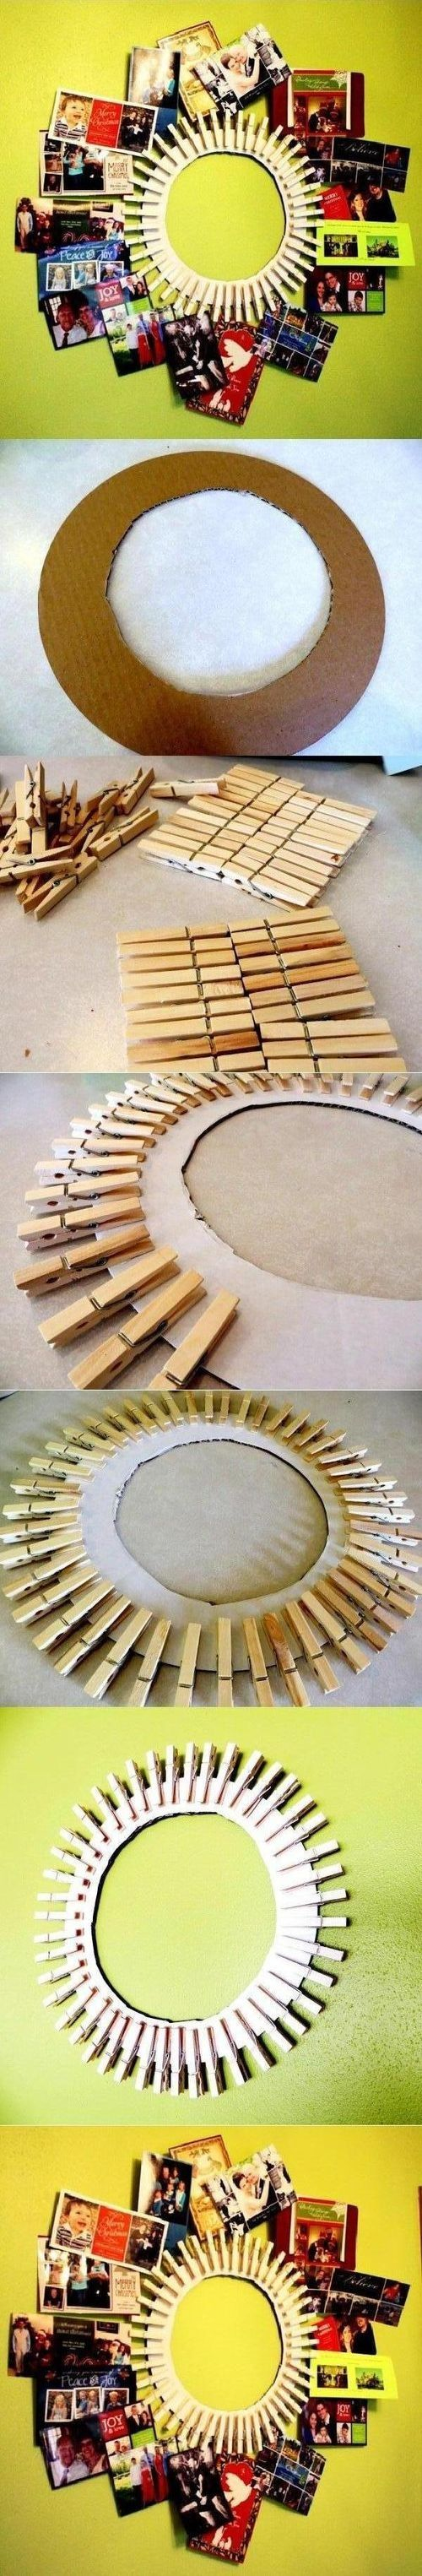 DIY: Christmas card wreath. I'd paint the cardboard red or green.